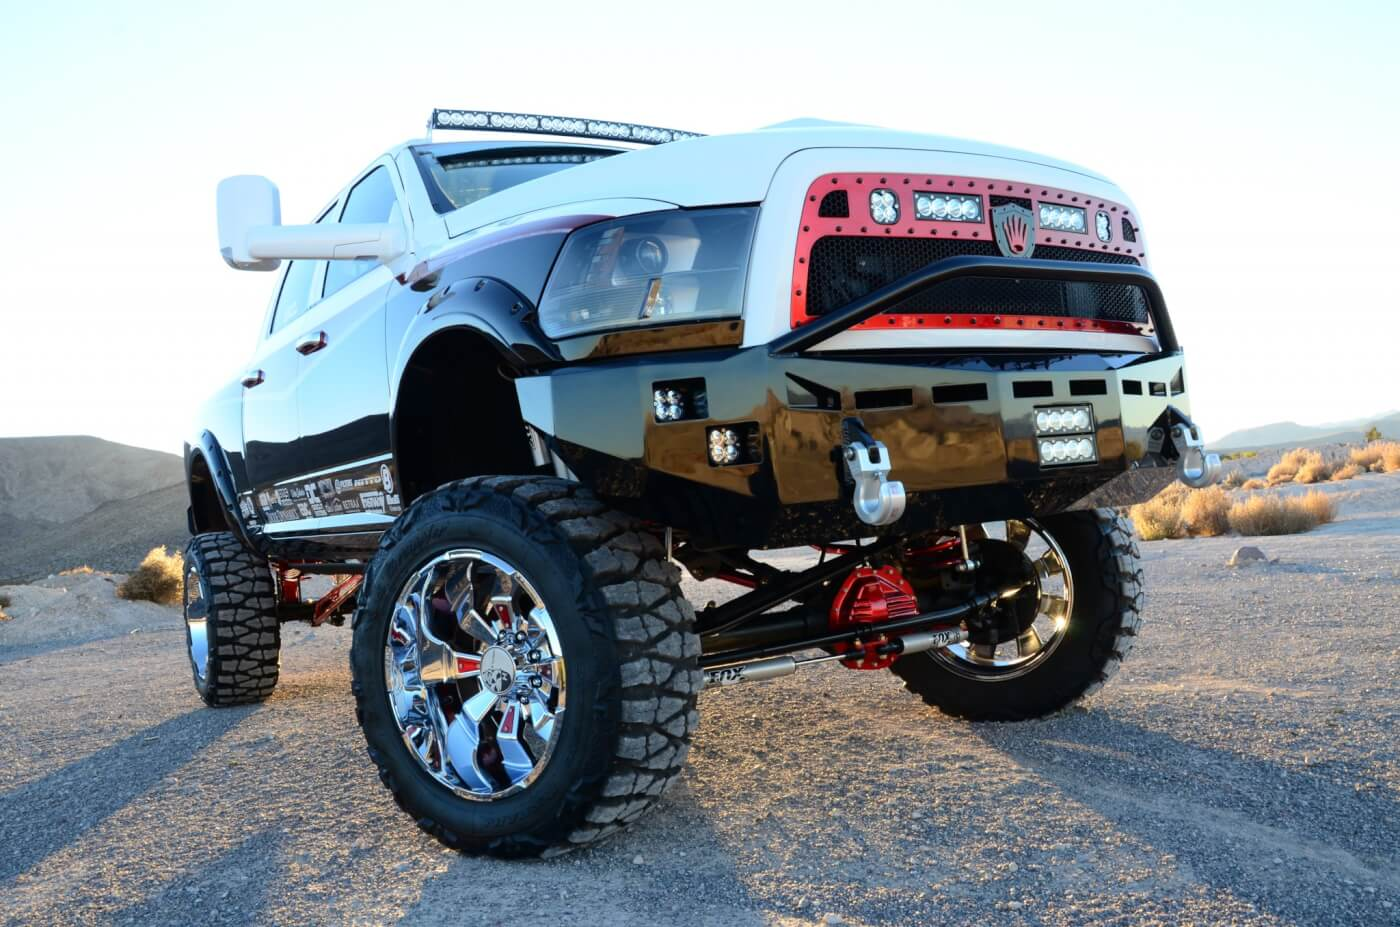 A pair of color matched Fusion Bumpers packed with Baja Designs LED lights protect the front and rear ends.